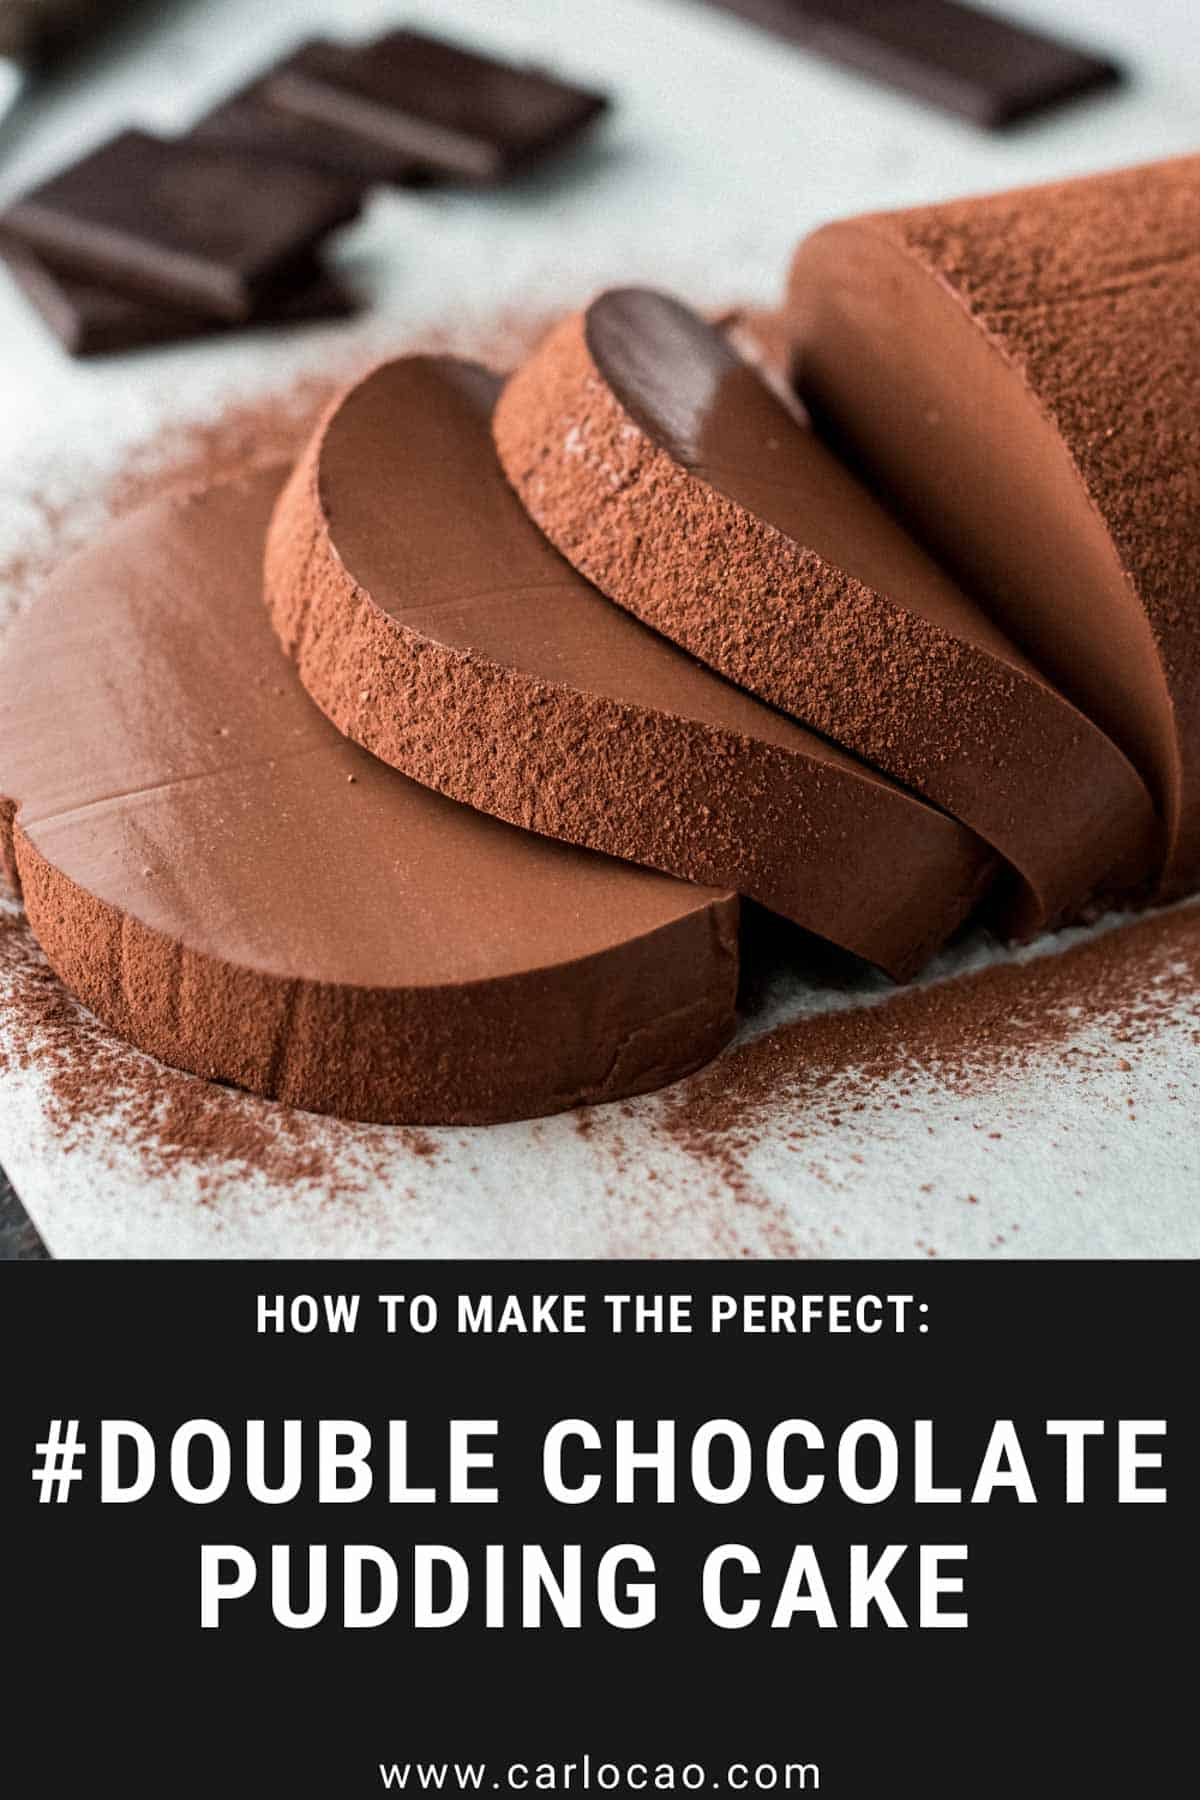 double chocolate pudding cake recipe pin for pinterest